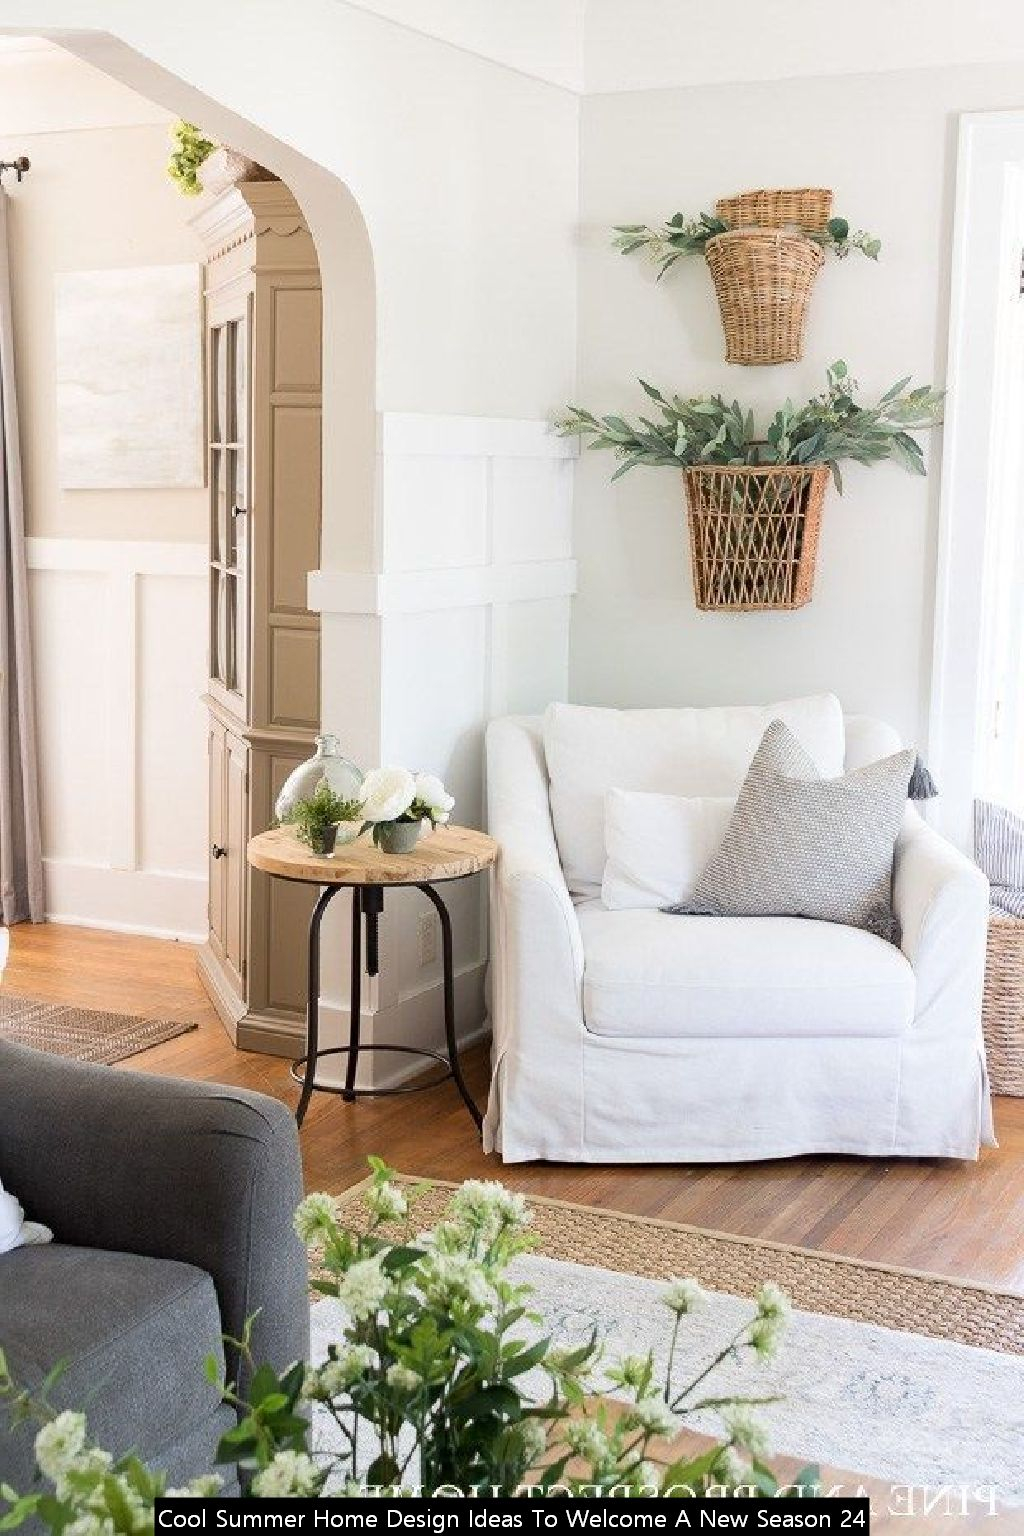 Cool Summer Home Design Ideas To Welcome A New Season 24